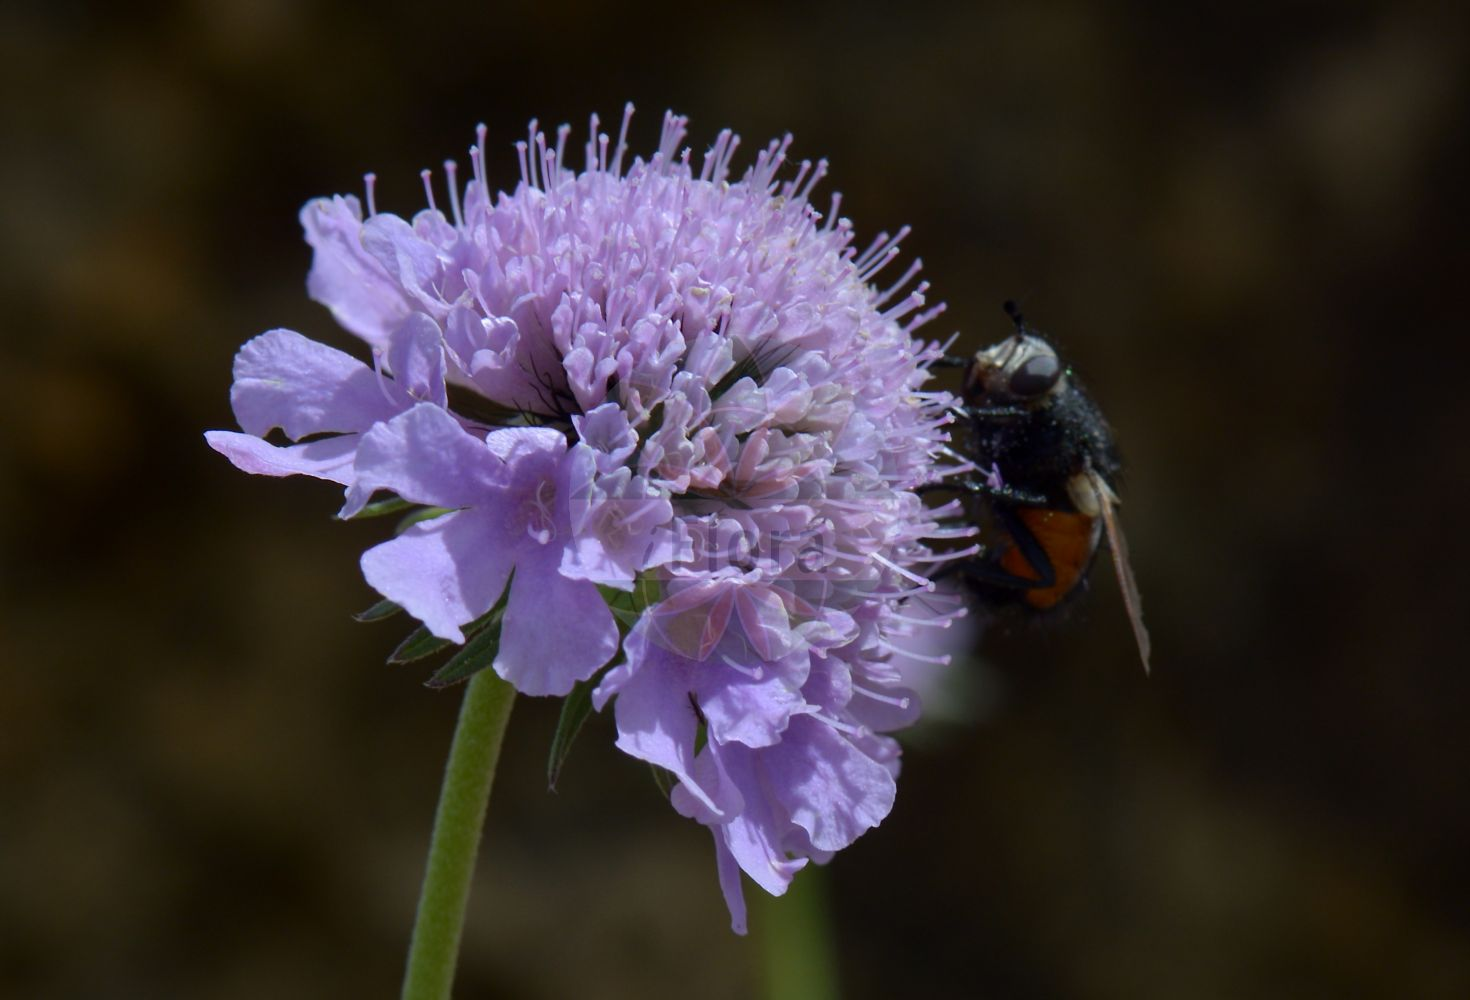 Foto von Scabiosa lucida (Glaenzende Skabiose - Glossy Scabious). Das Bild zeigt Bluete. Das Foto wurde in Saussurea, Mont Blanc, Valle d'Aosta, Italien aufgenommen. ---- Photo of Scabiosa lucida (Glaenzende Skabiose - Glossy Scabious).The image is showing flower.The picture was taken in Saussurea, Mont Blanc, Valle d'Aosta, Italy.(Scabiosa lucida,Glaenzende Skabiose,Glossy Scabious,Scabiosa opaca,Scabiosa pubescens,Shining Scabious,Scabiosa,Skabiose,Scabious,Caprifoliaceae,Geissblattgewaechse,Honeysuckle family,Bluete,flower)